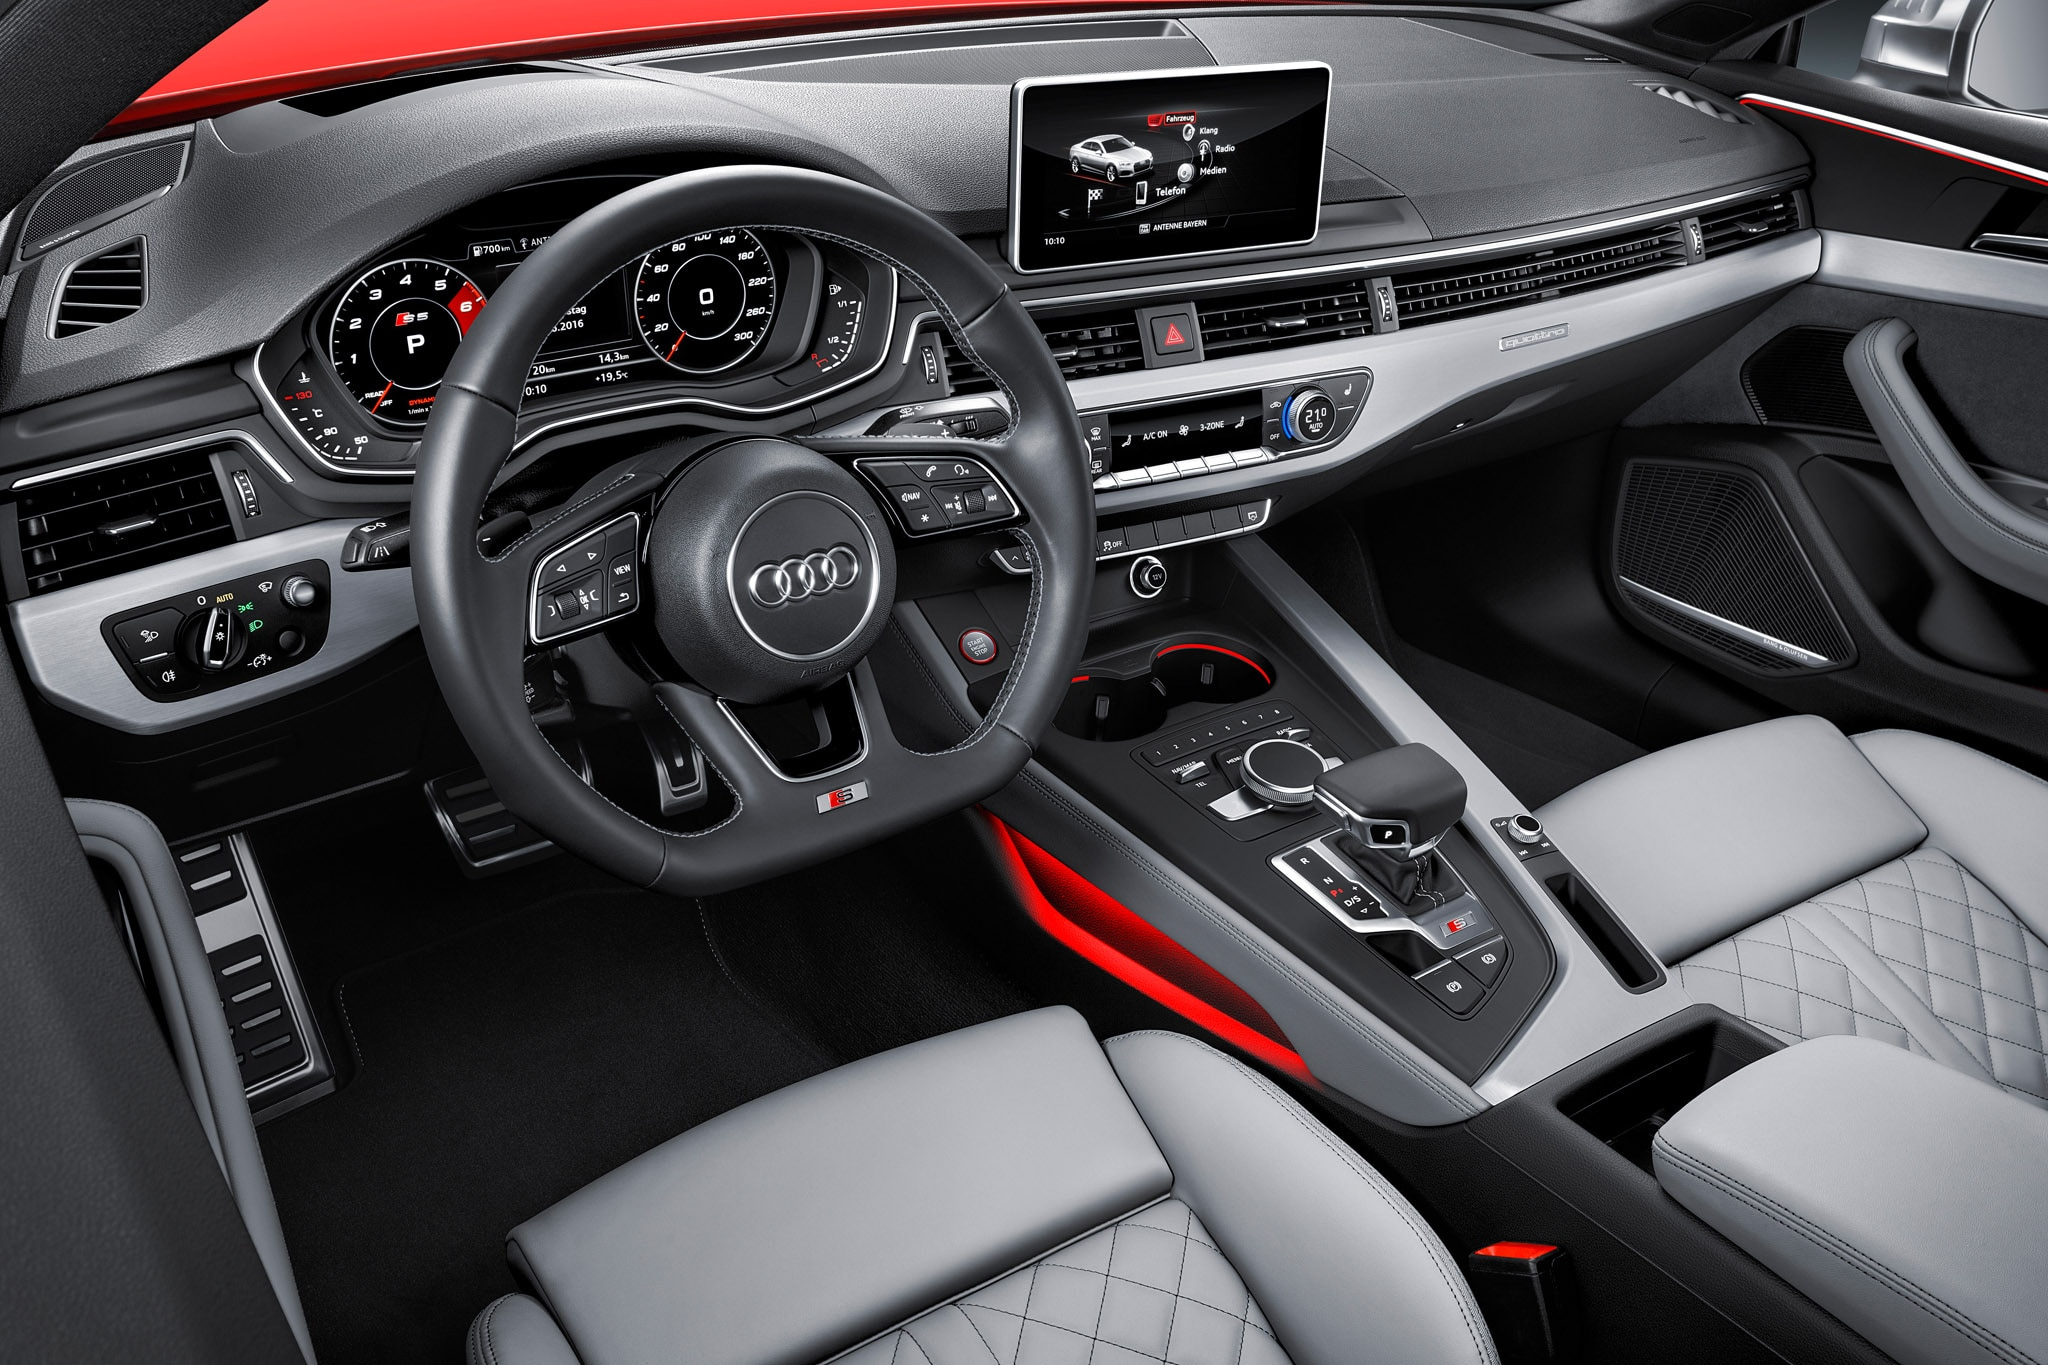 2018 audi s5 coupe.  audi show more inside 2018 audi s5 coupe r